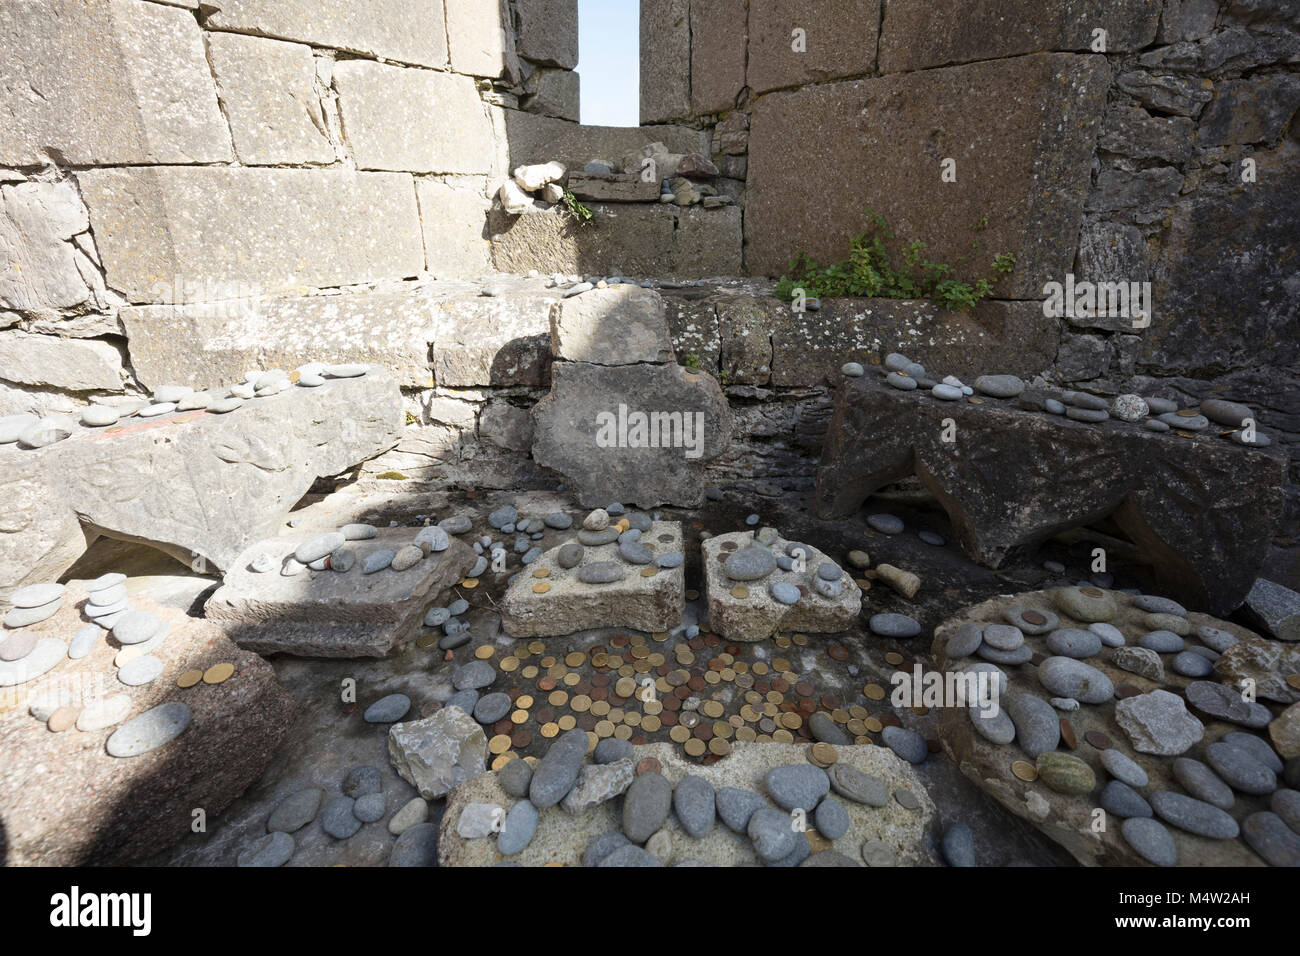 Religious offerings in The Seven Churches, Inishmore, Aran Islands, County Galway, Ireland. - Stock Image